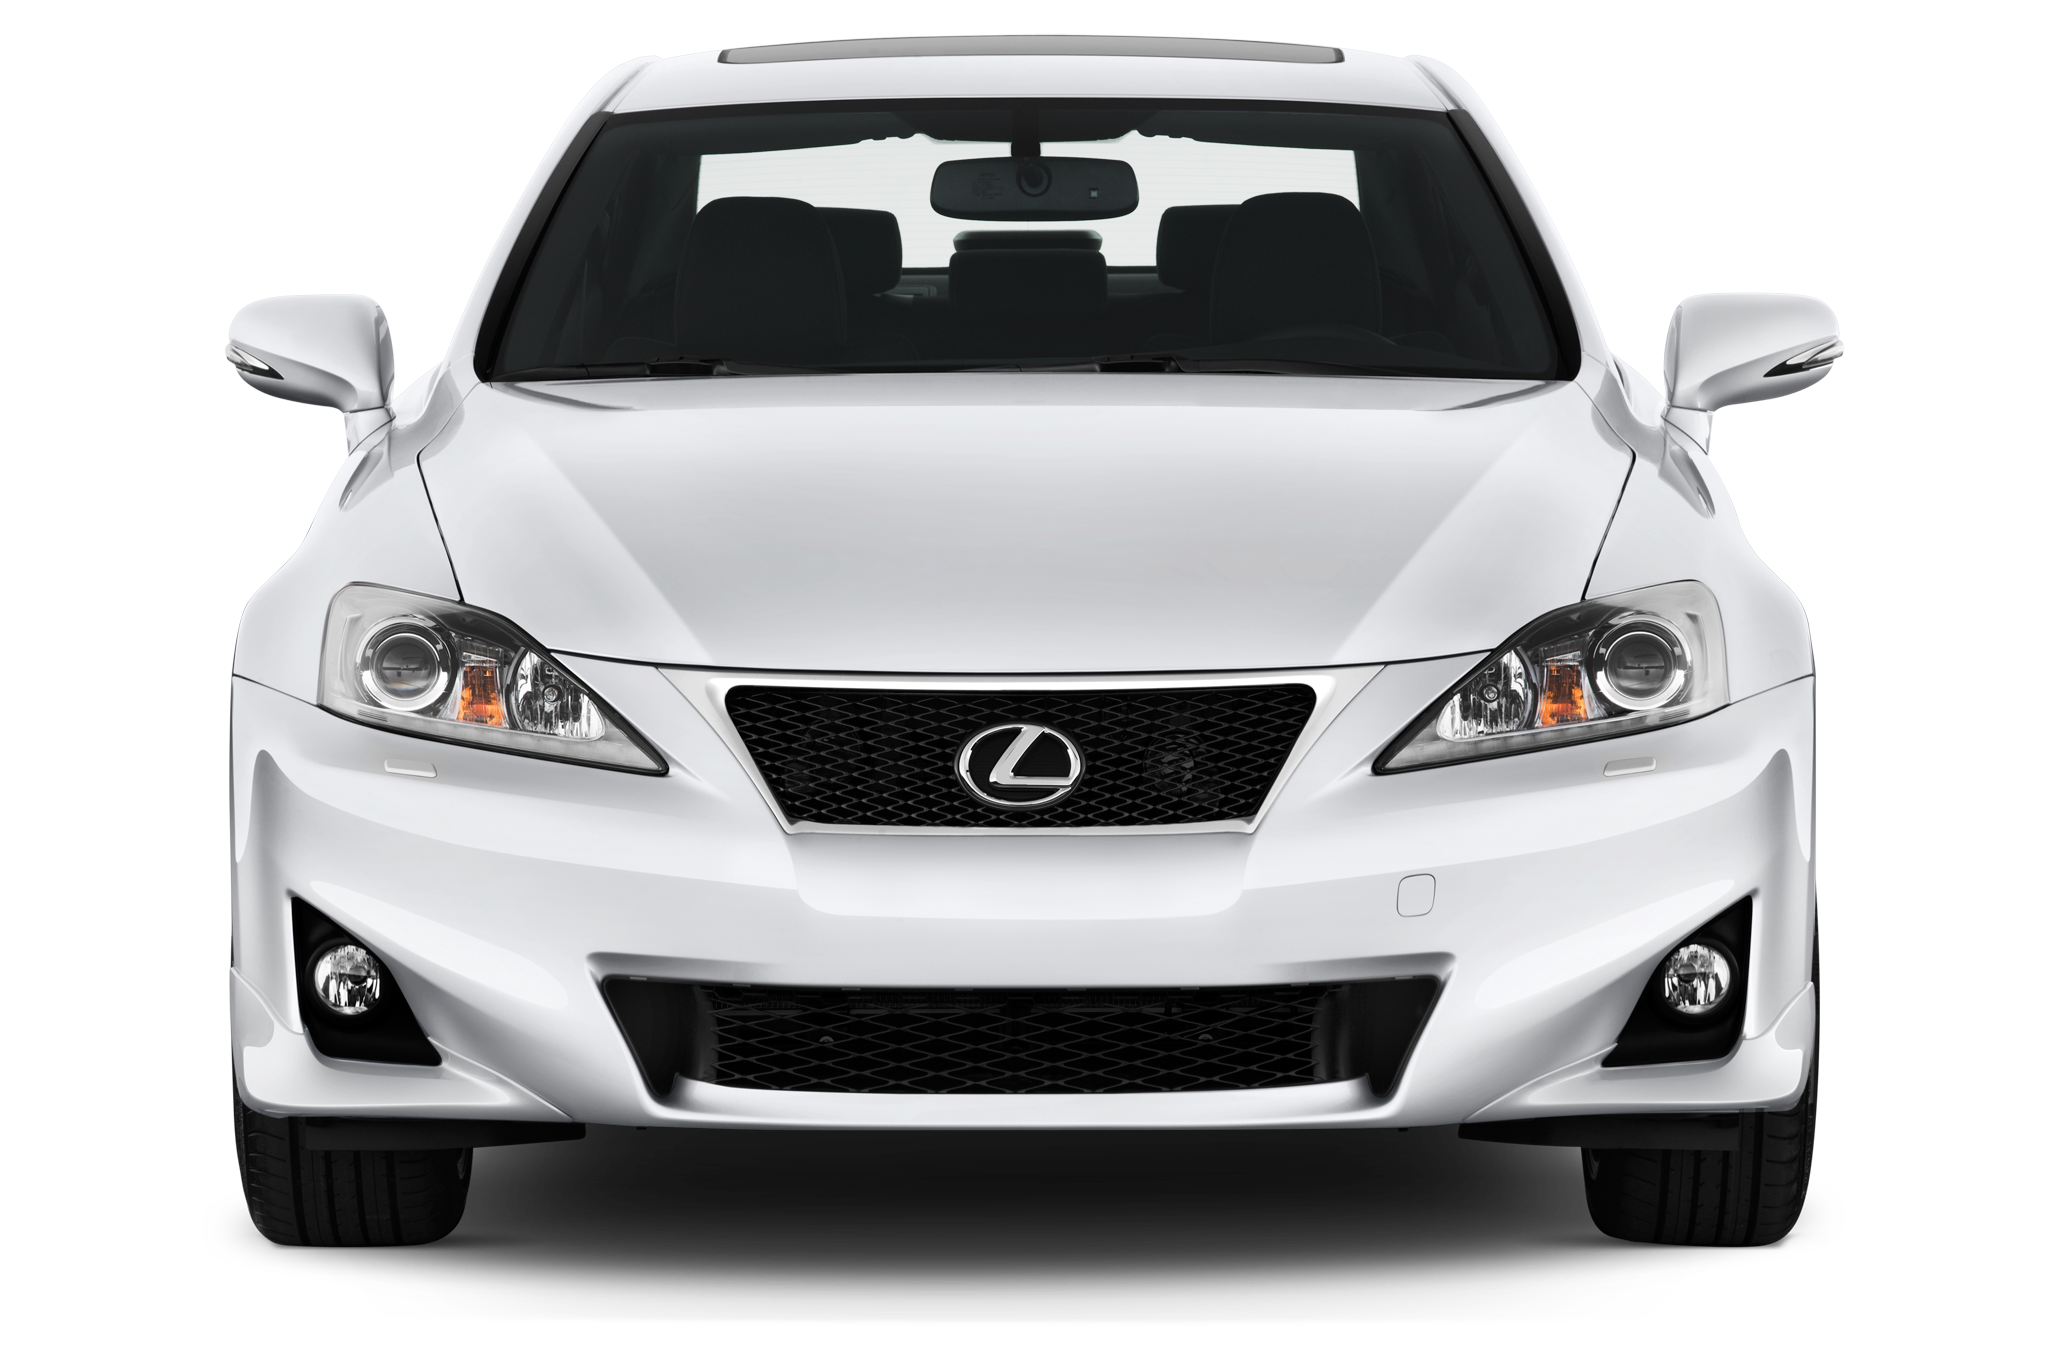 http://st.automobilemag.com/uploads/sites/10/2015/11/2011-lexus-is-350-rwd-sedan-front-view.png